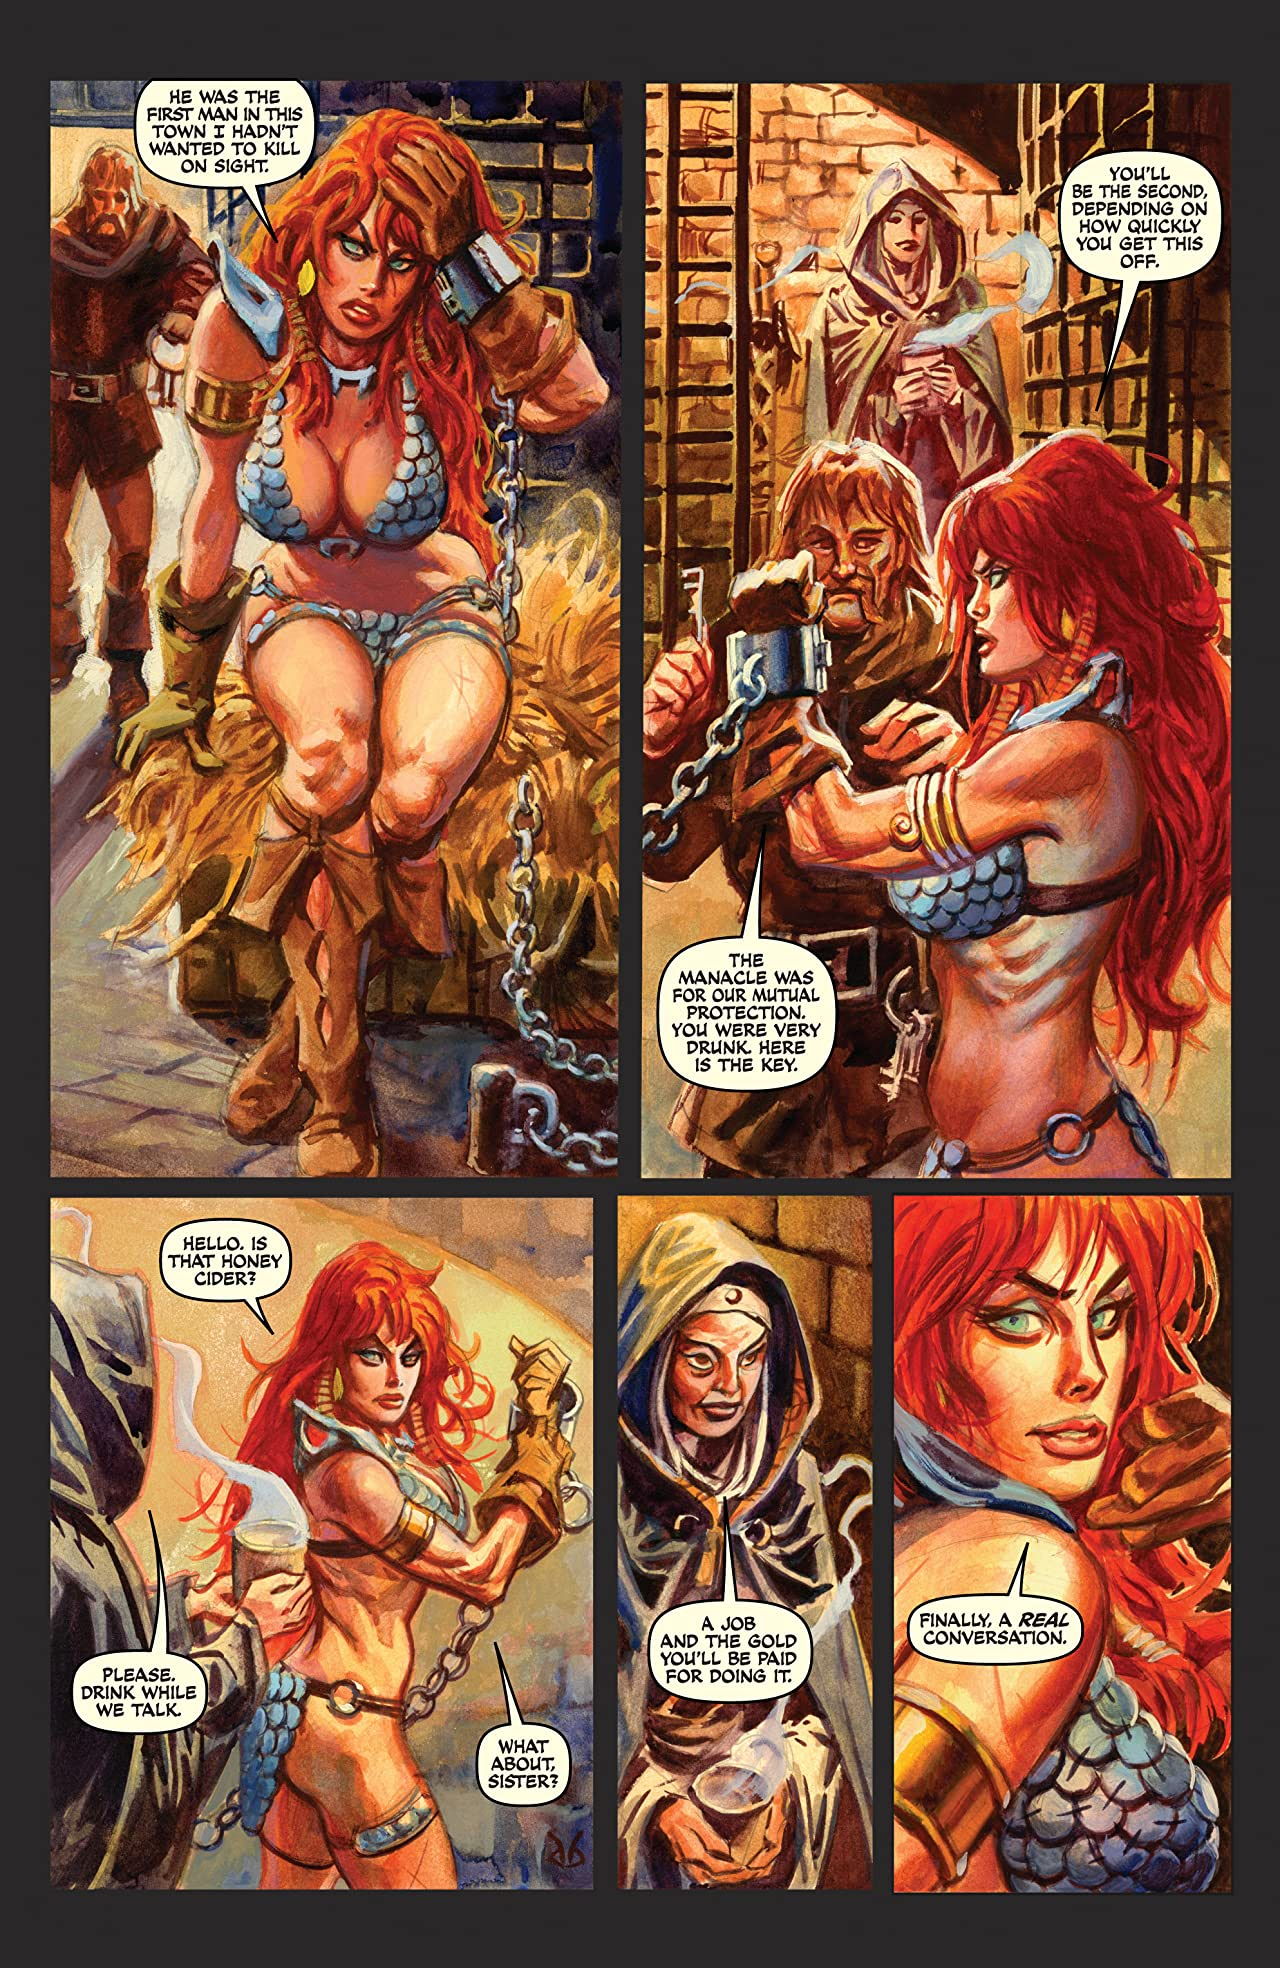 Red Sonja: She-Devil With a Sword - Annual #3